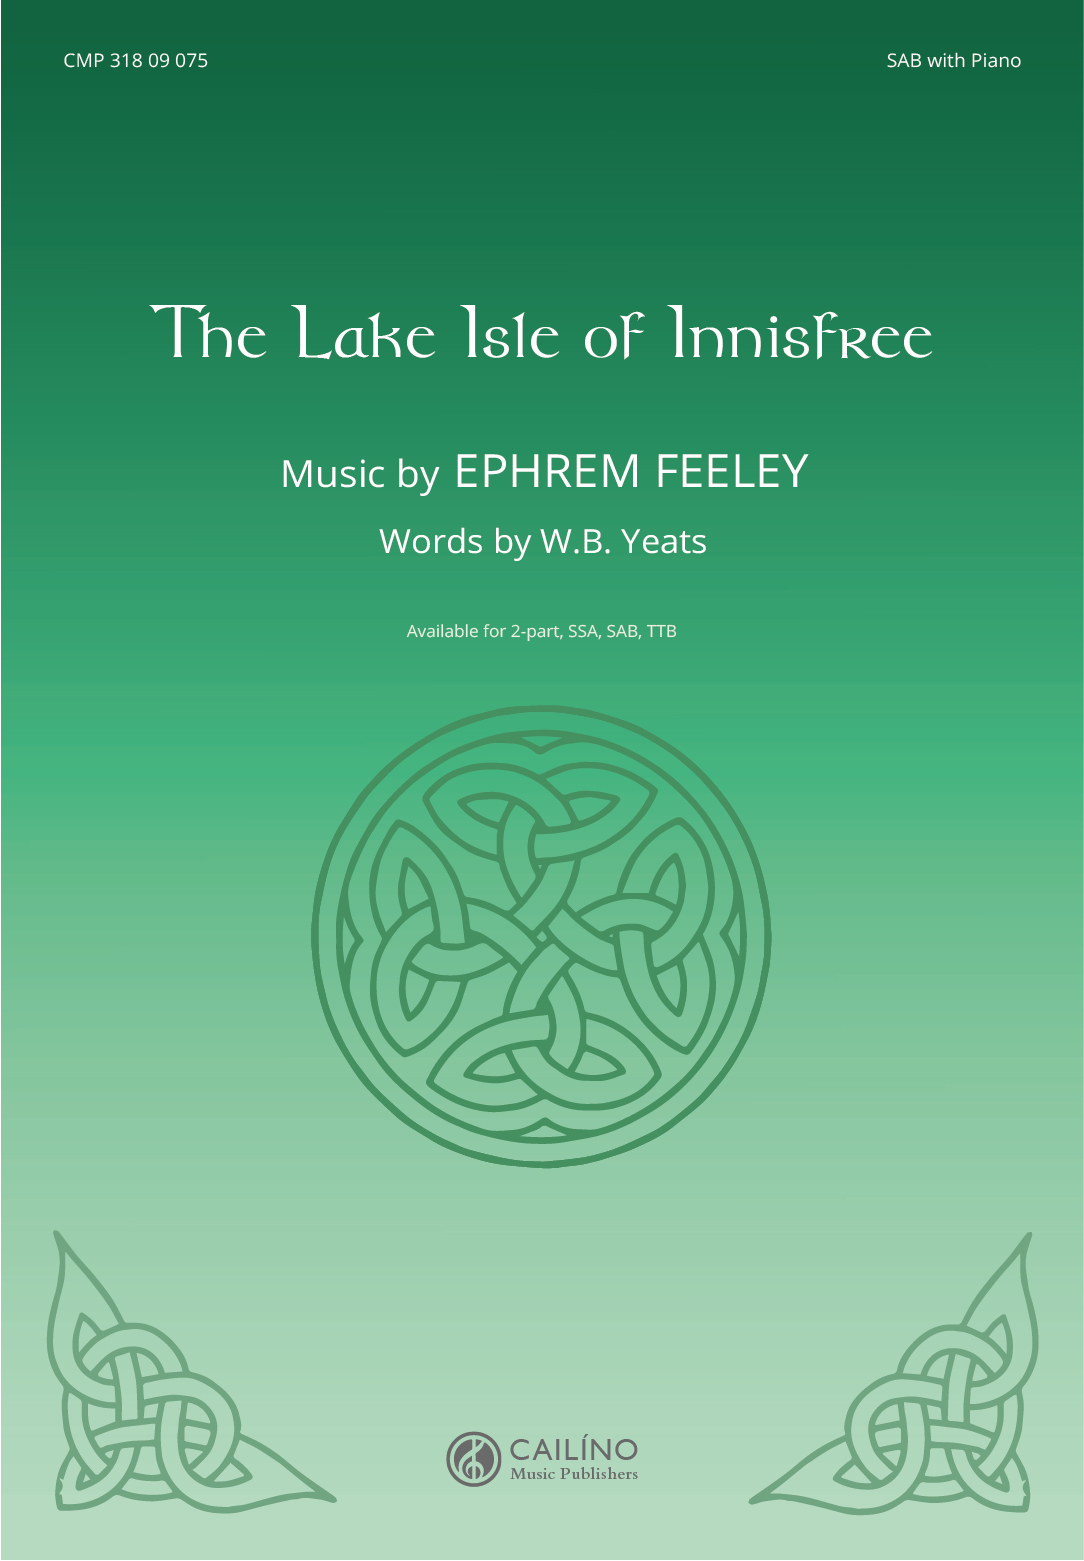 The Lake Isle of Innisfree SAB Score Cover